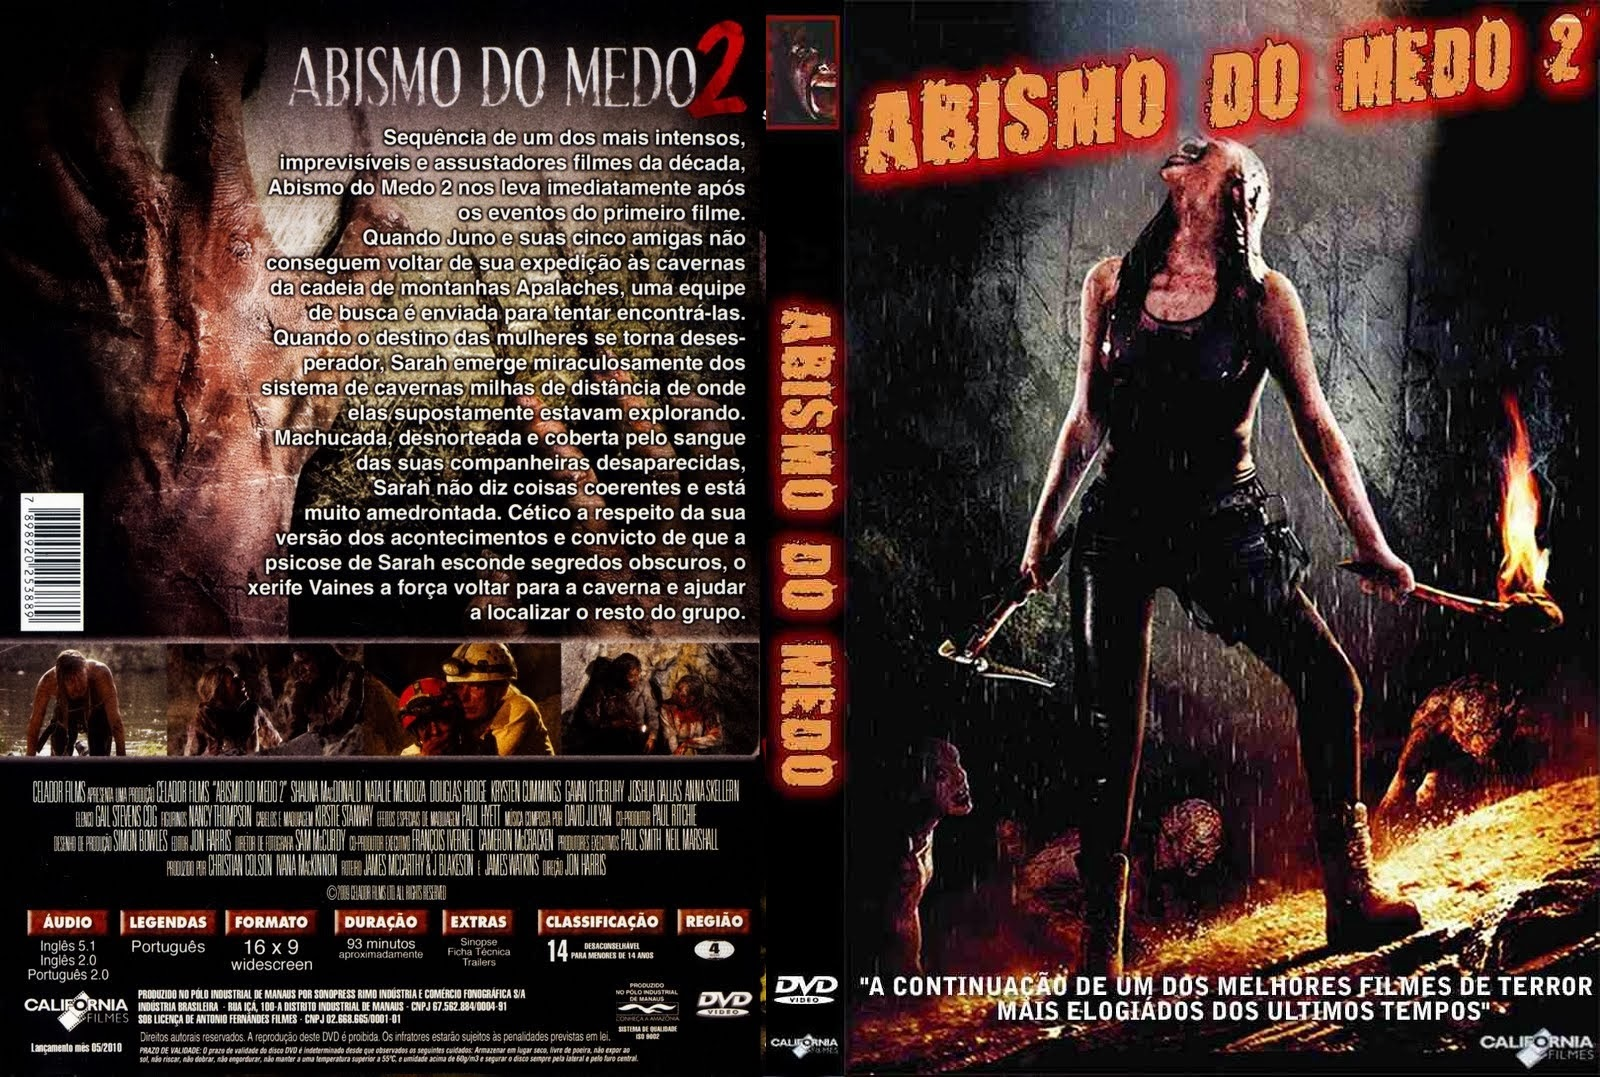 Abismo do Medo 2 DVD Capa